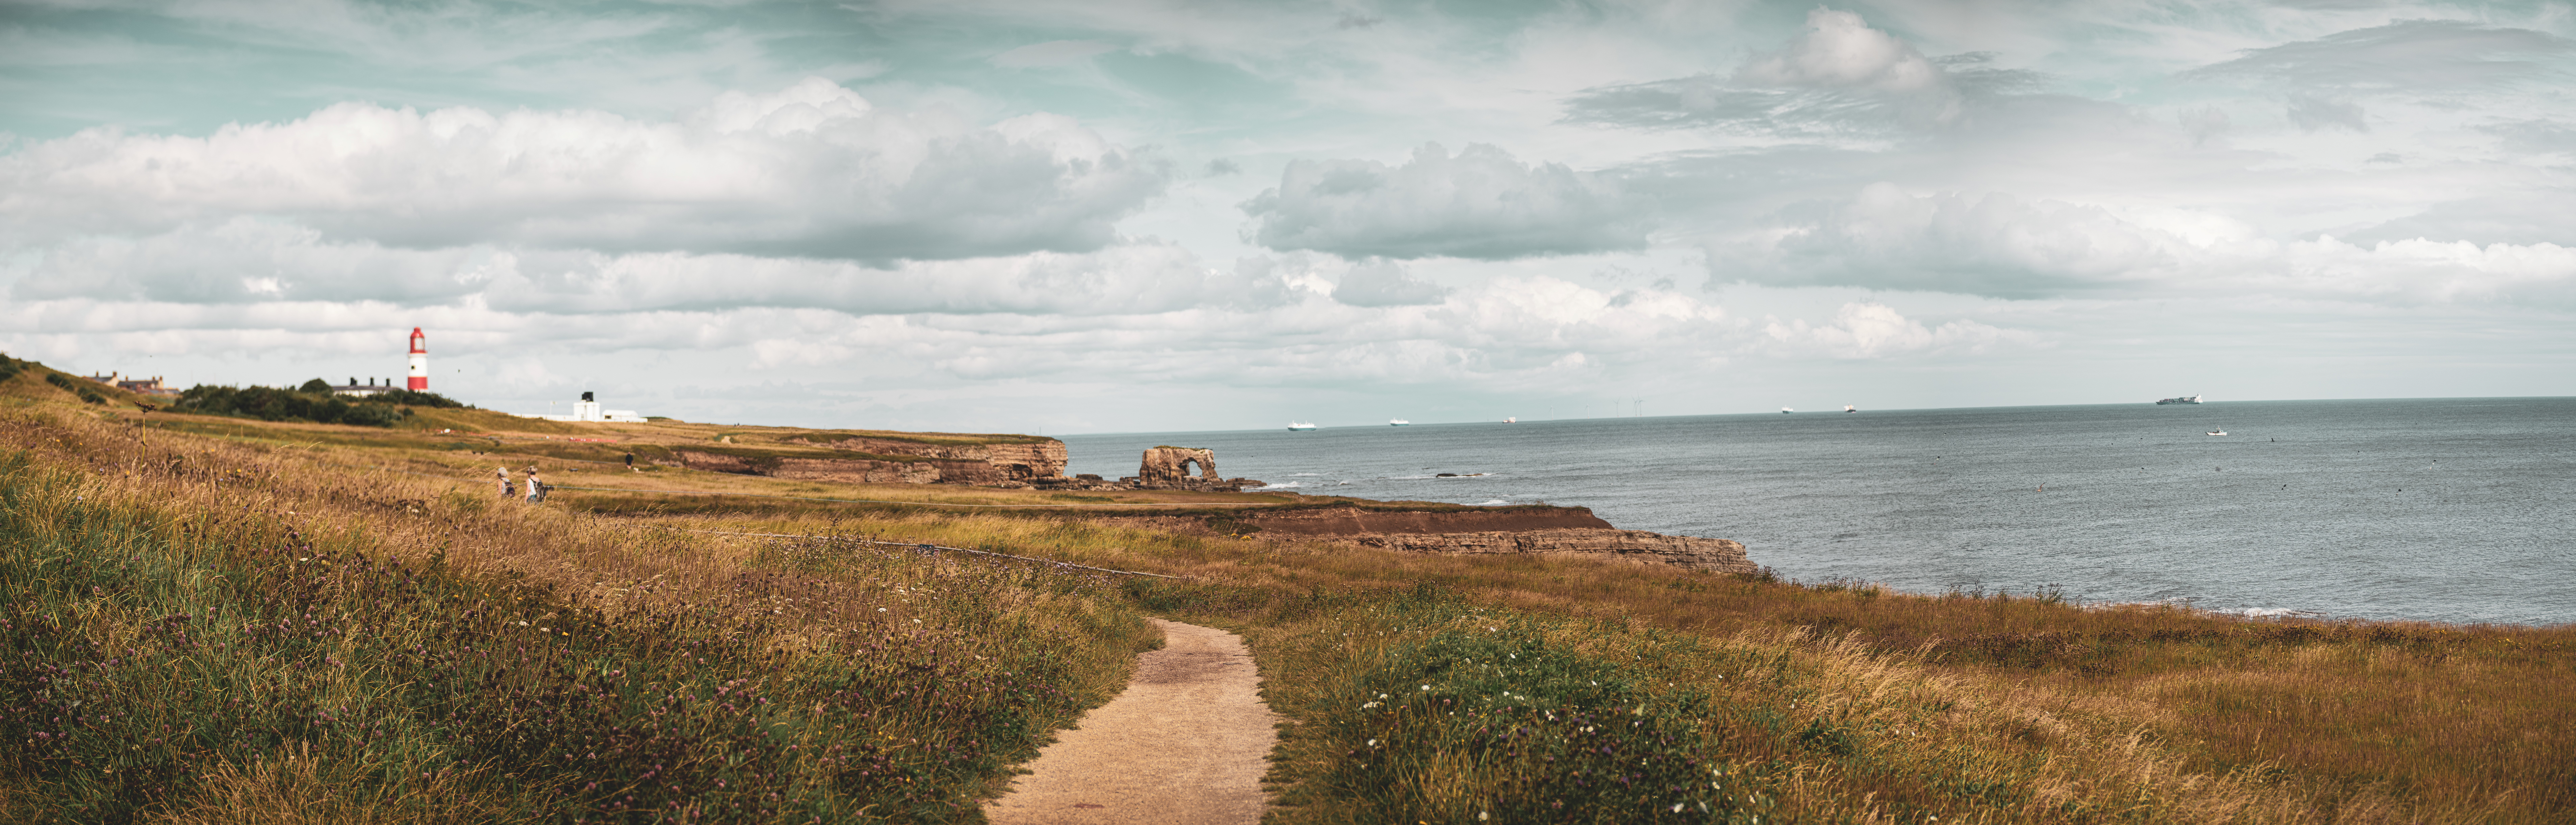 Souter Lighthouse 3